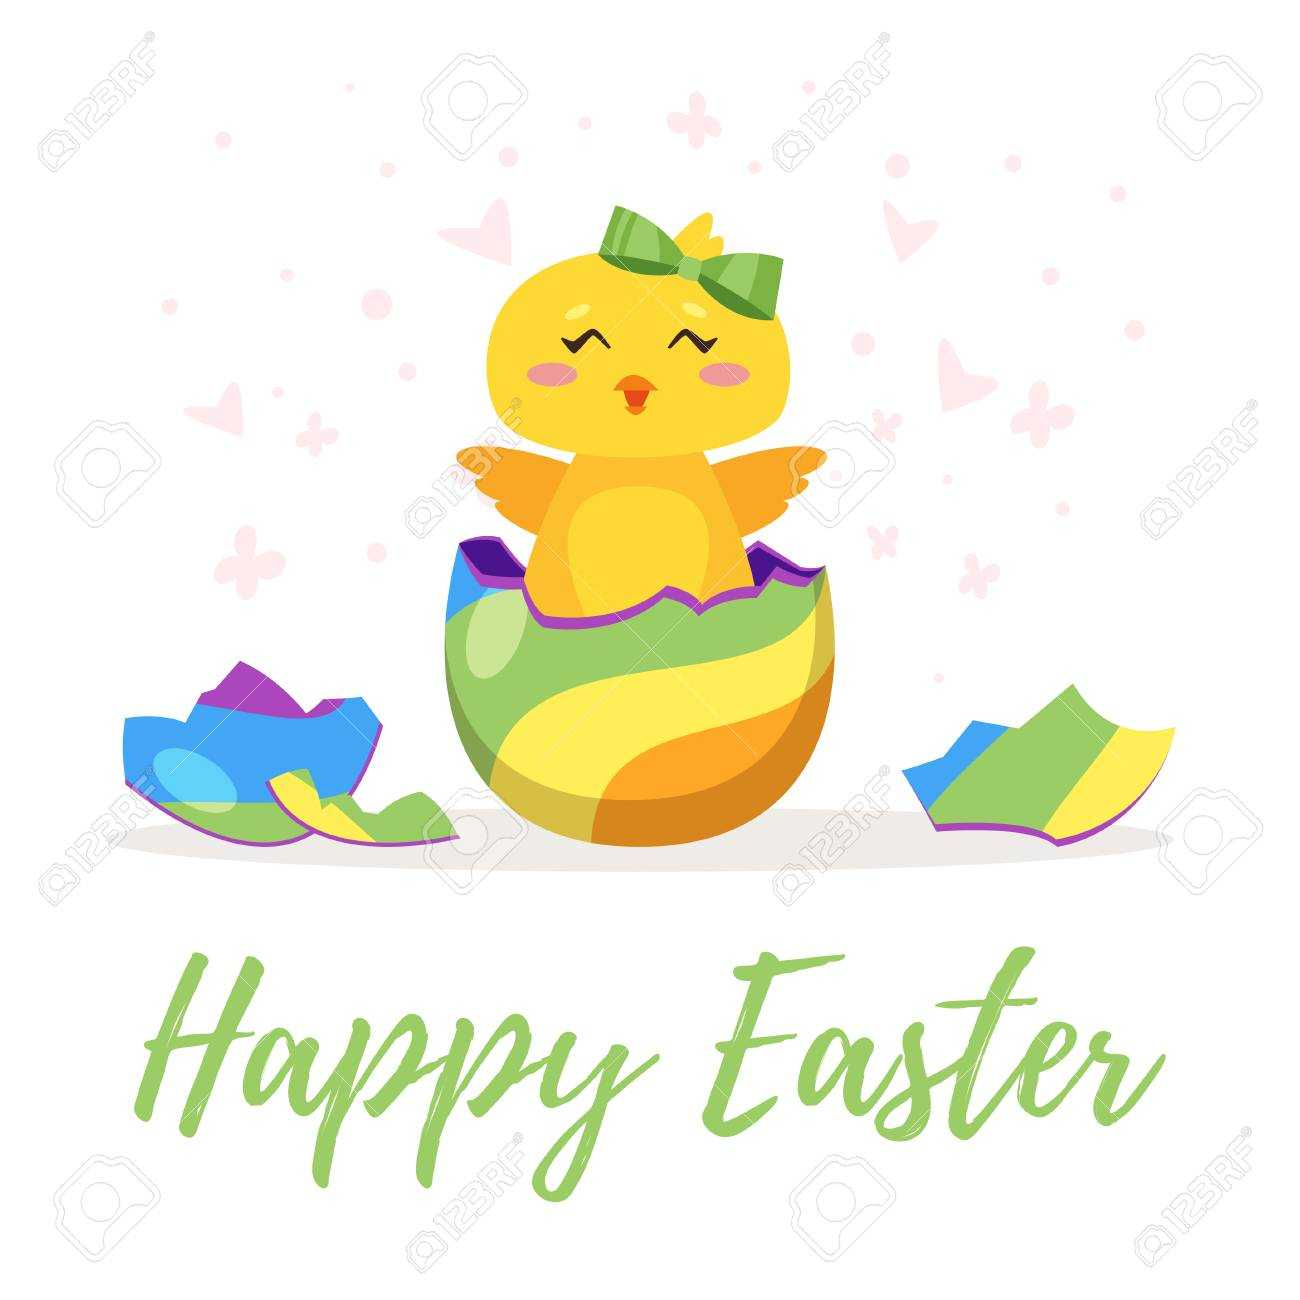 Easter Day Greeting Card Template With Cute Chick Hatched From.. For Easter Chick Card Template